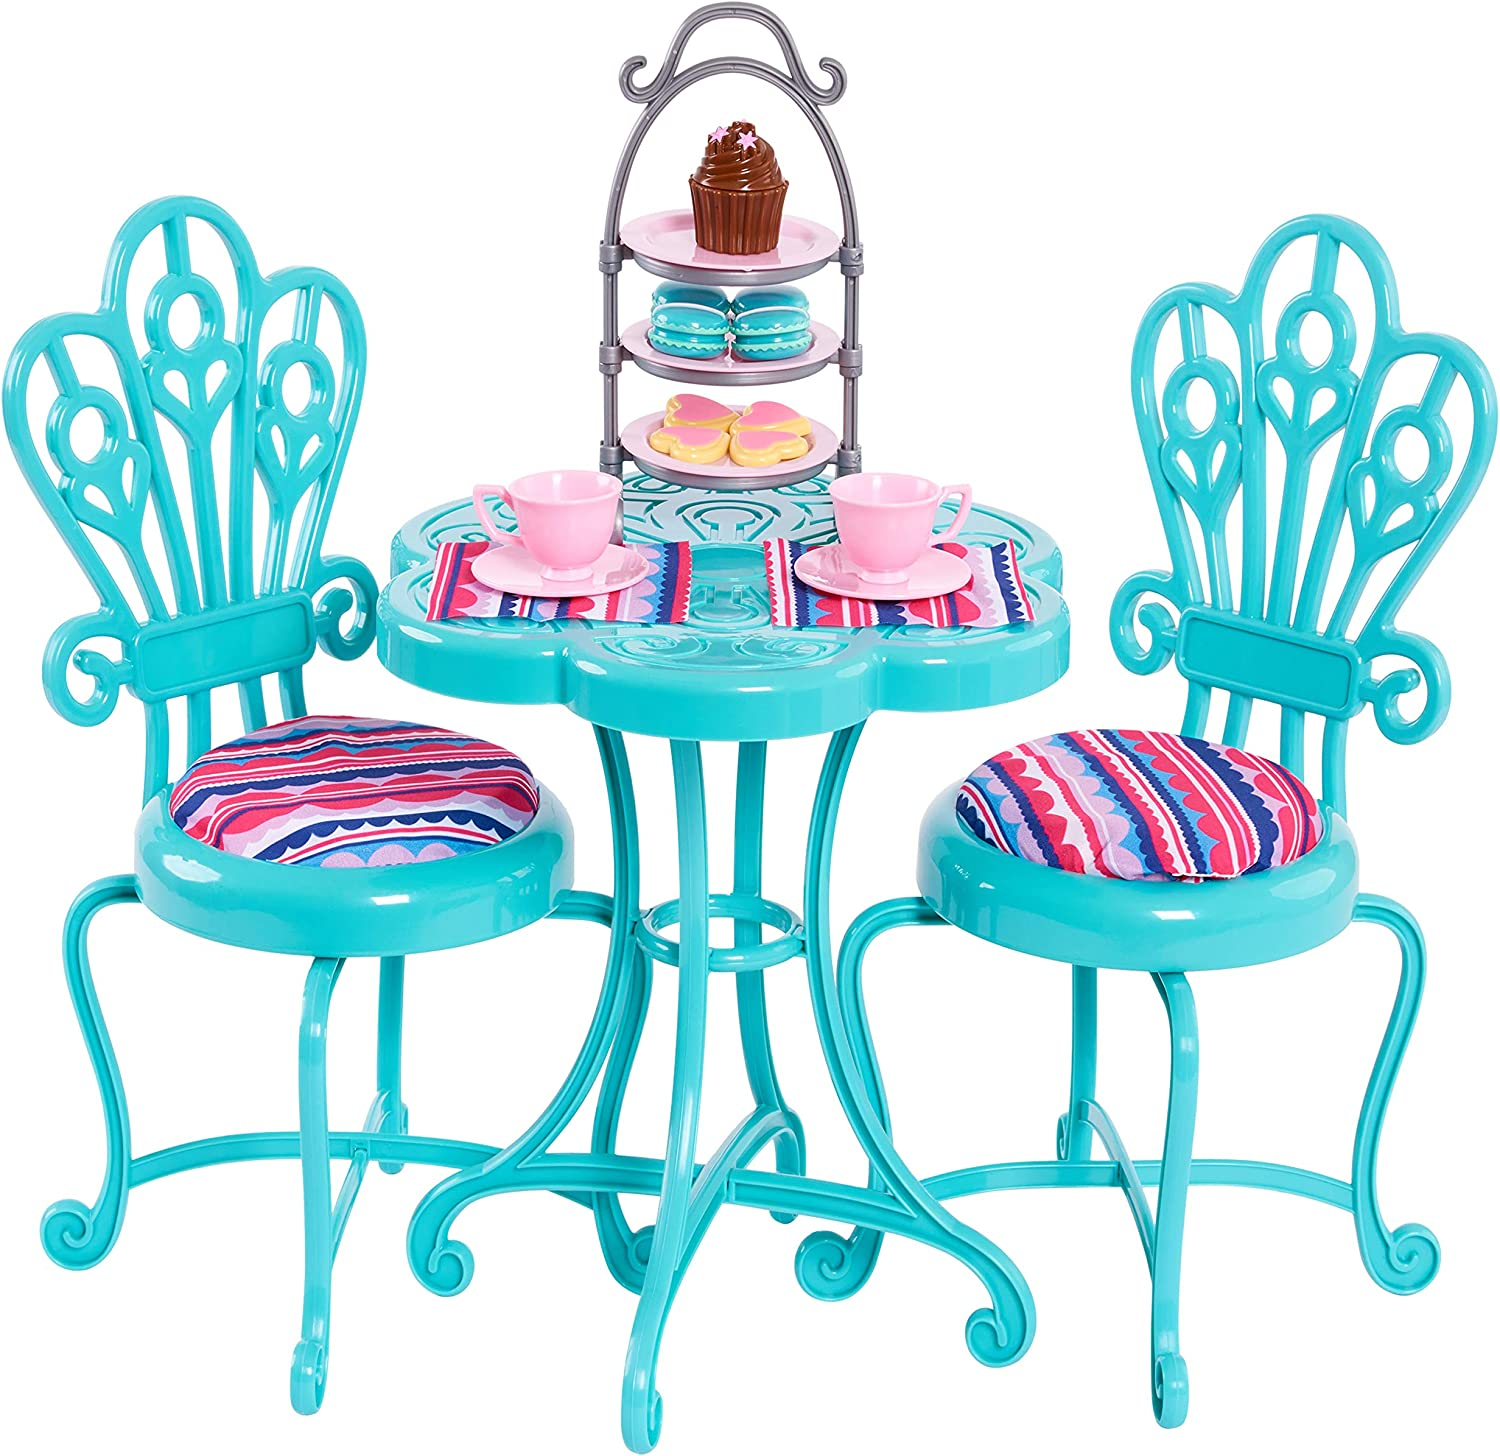 Journey Girls Bistro Table Set - Amazon Exclusive